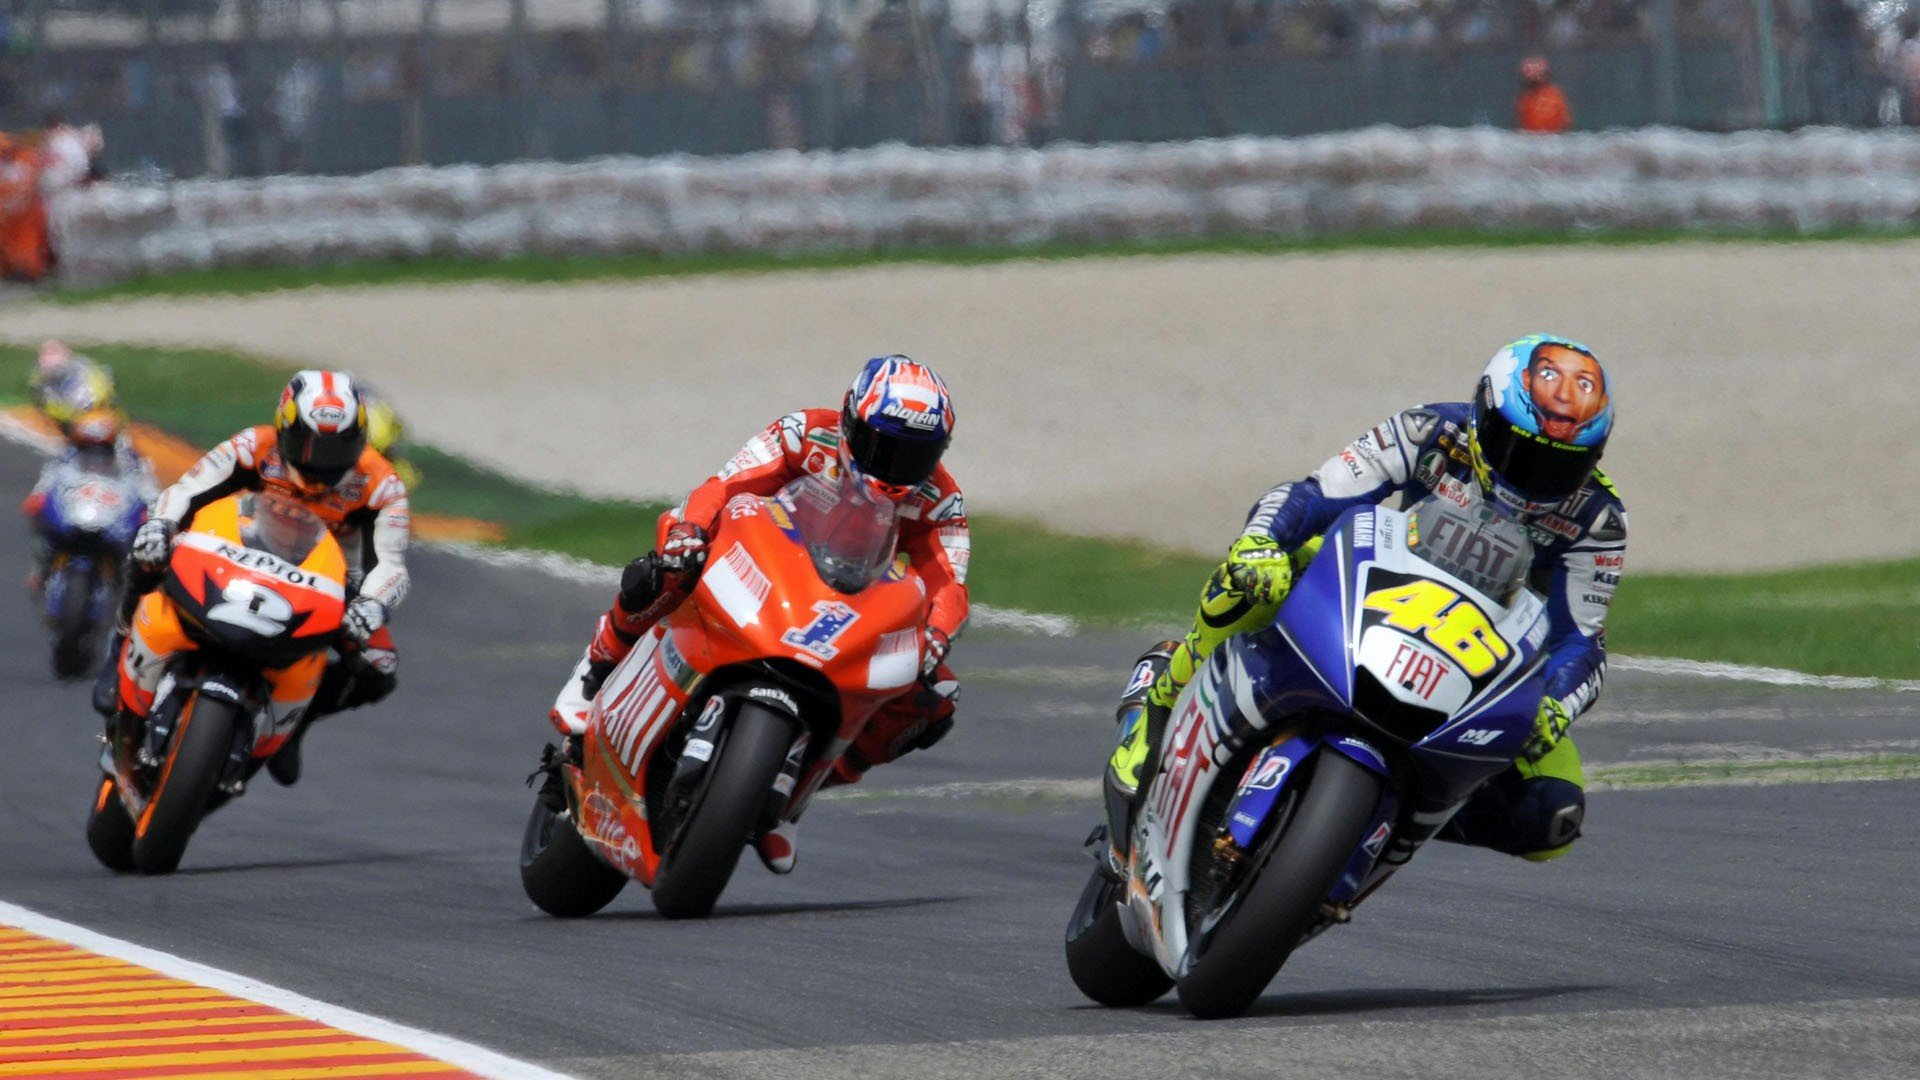 The-Doctor-Valentino-Rossi-Wallpaper-MotoGP-15